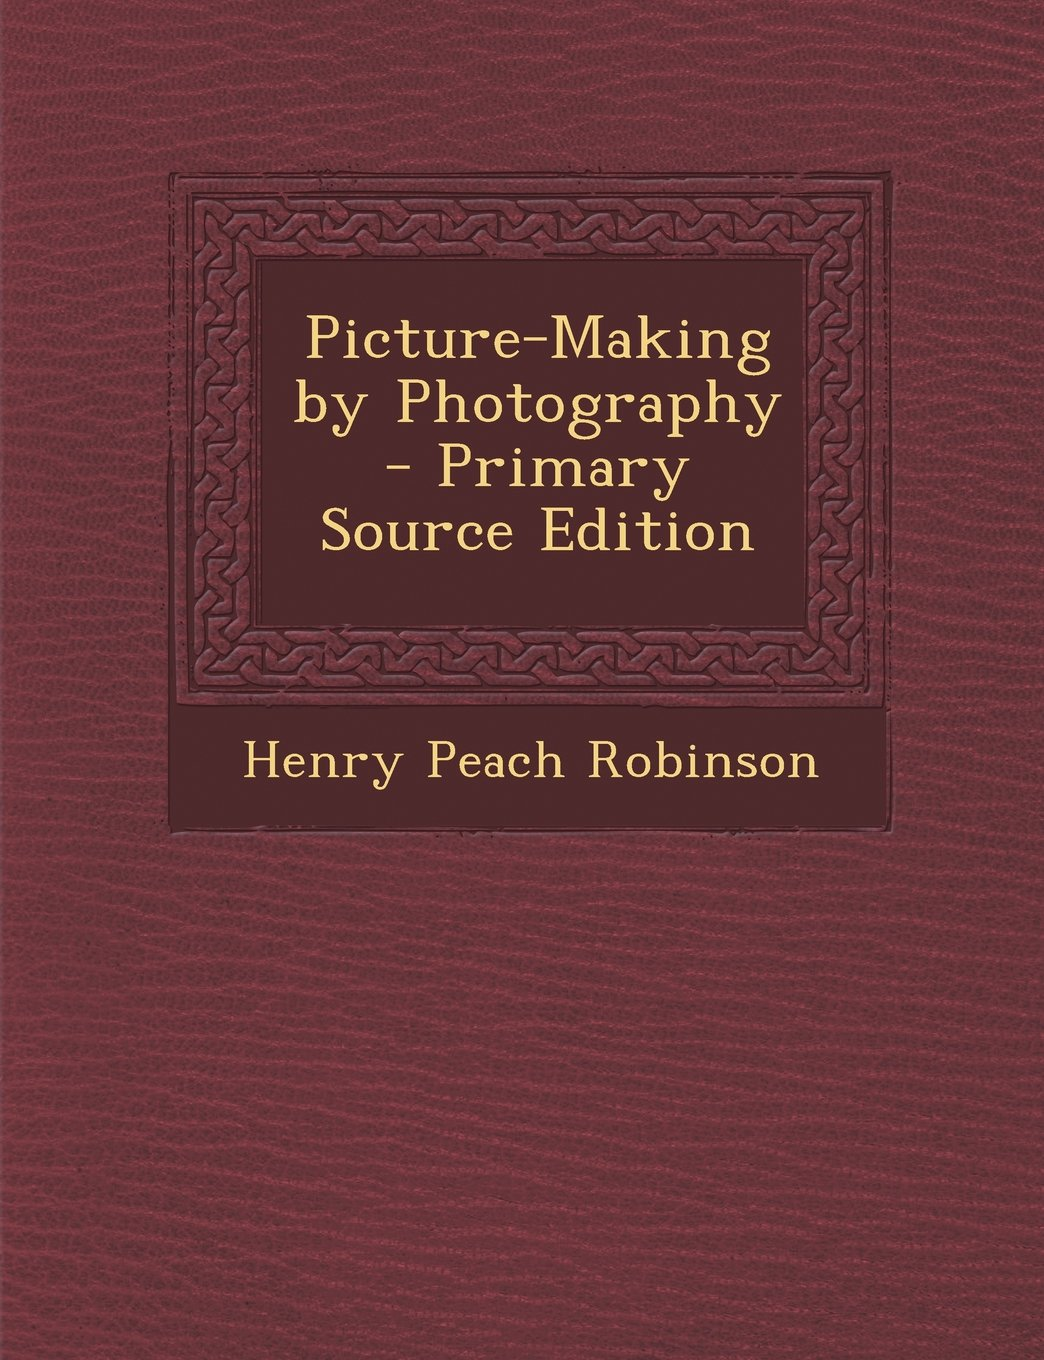 Download Picture-Making by Photography - Primary Source Edition ebook